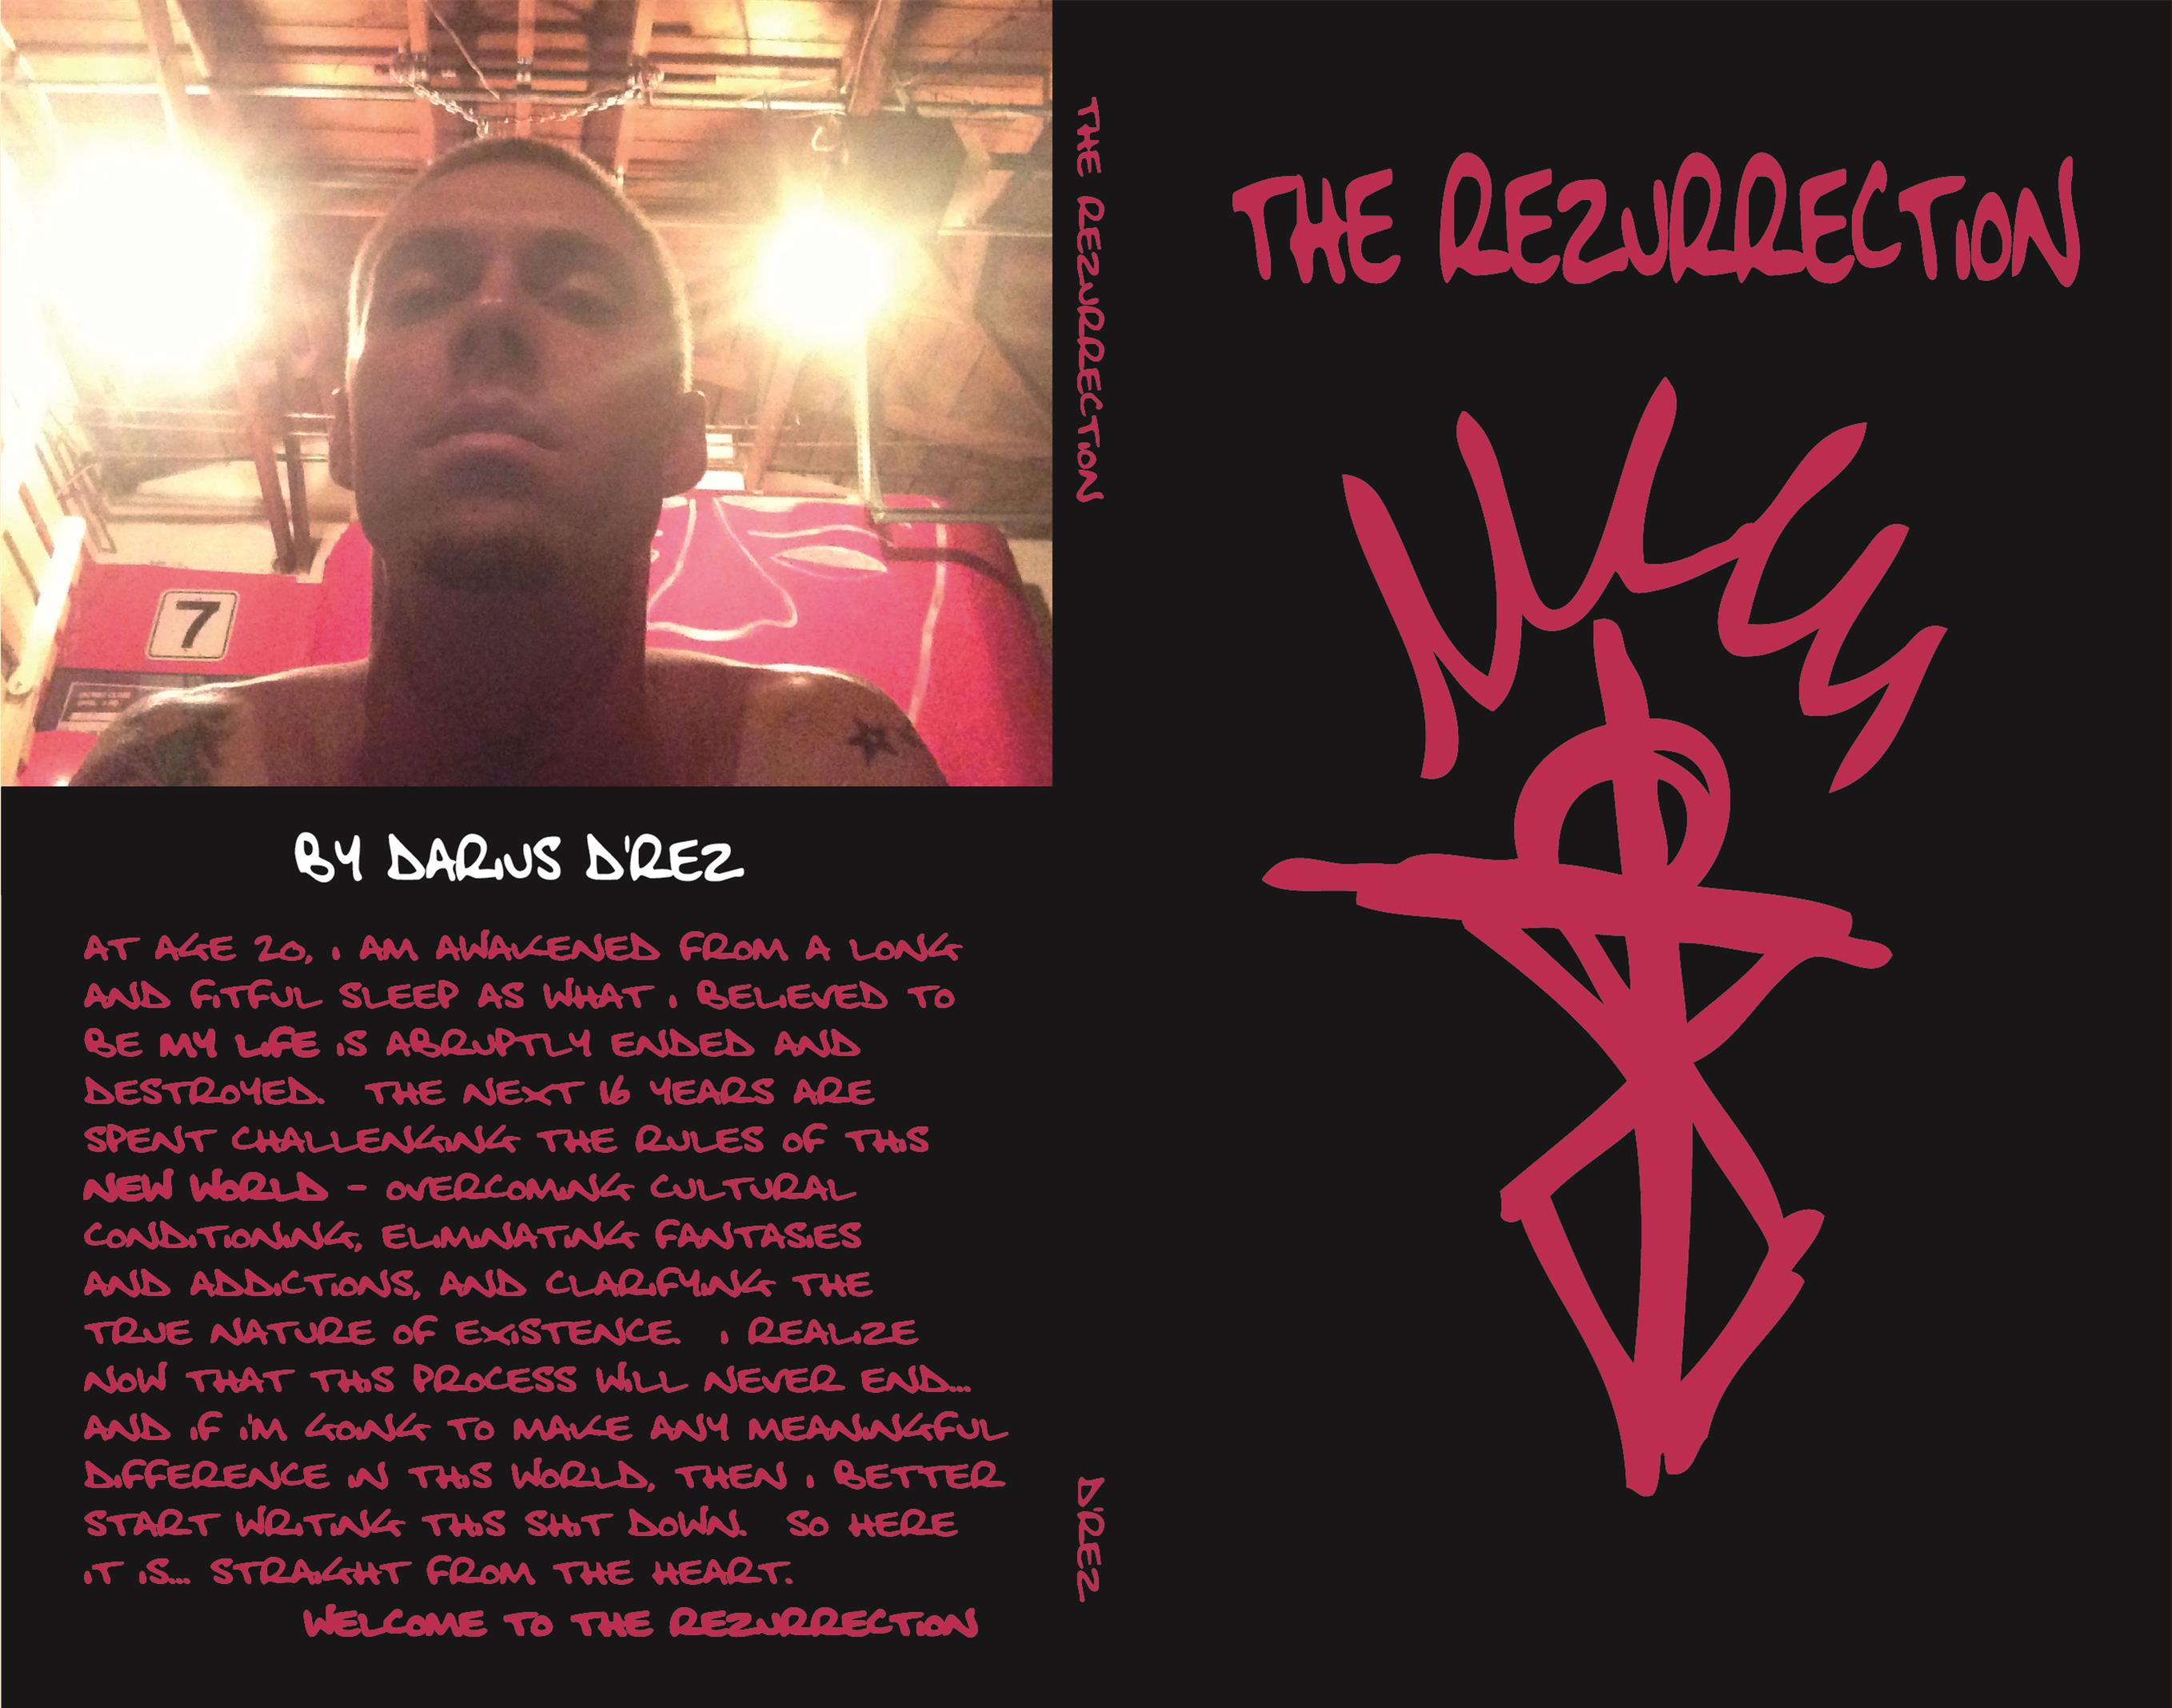 THE REZURRECTION cover image